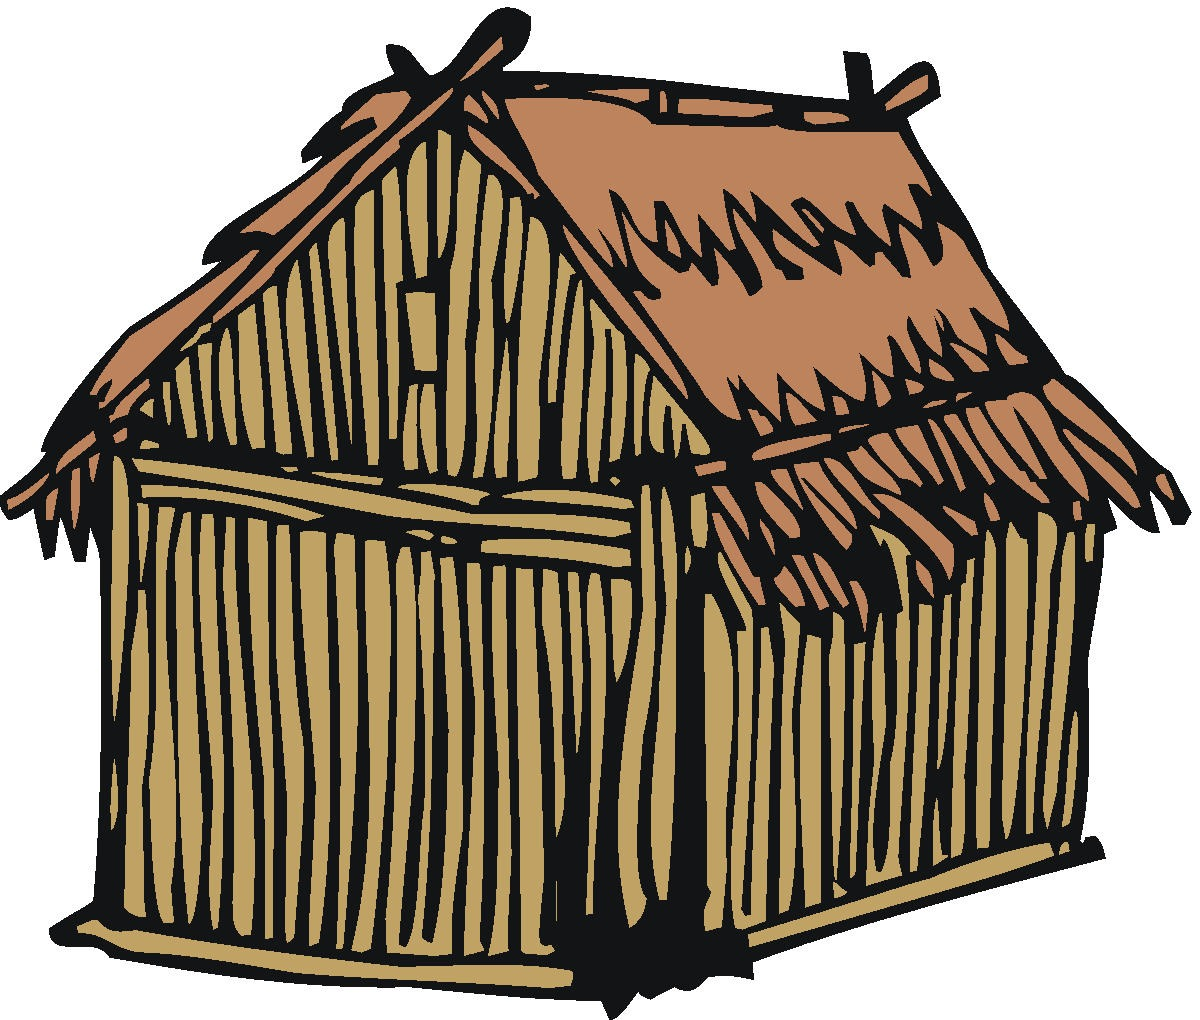 Poor house clipart.